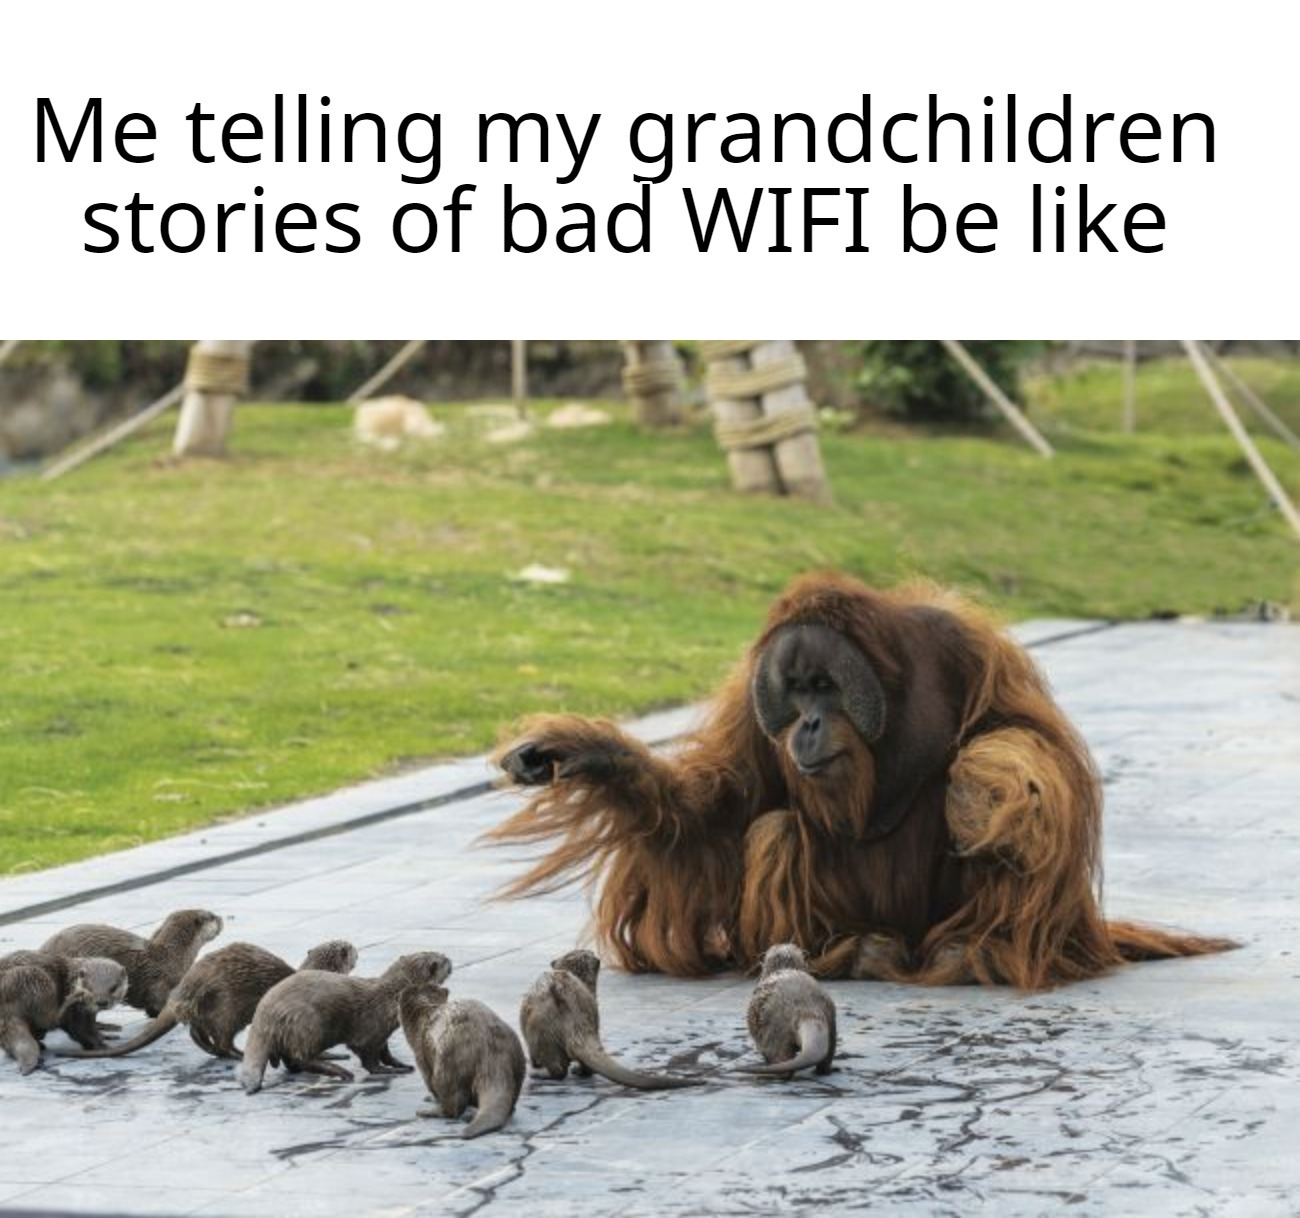 But Grandpa I thought that 3g connection was a myth! - meme